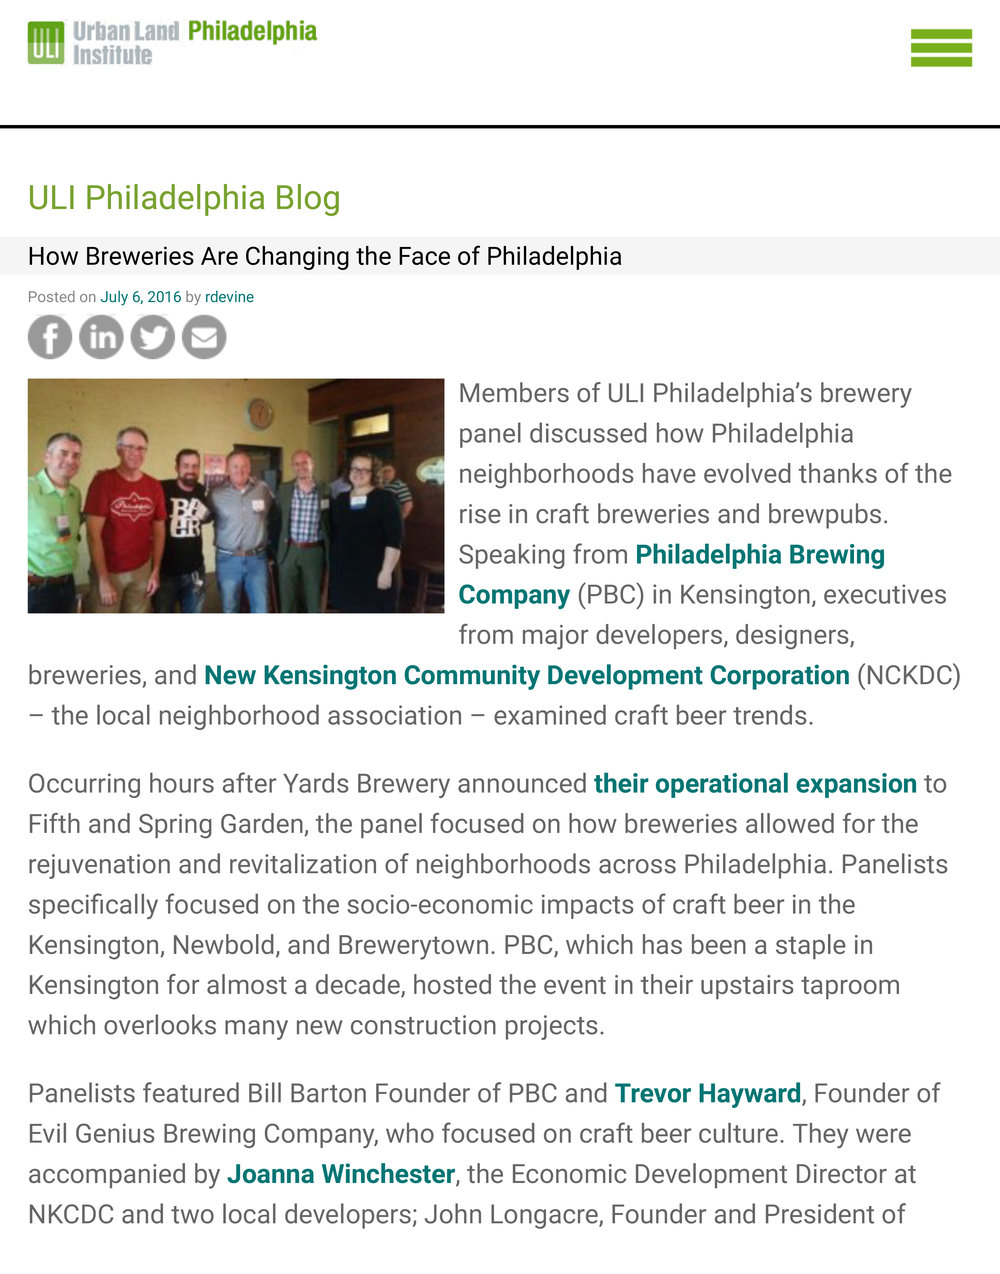 How Breweries Are Changing the Face of Philadelphia - ULI Philadelphia-1.jpg